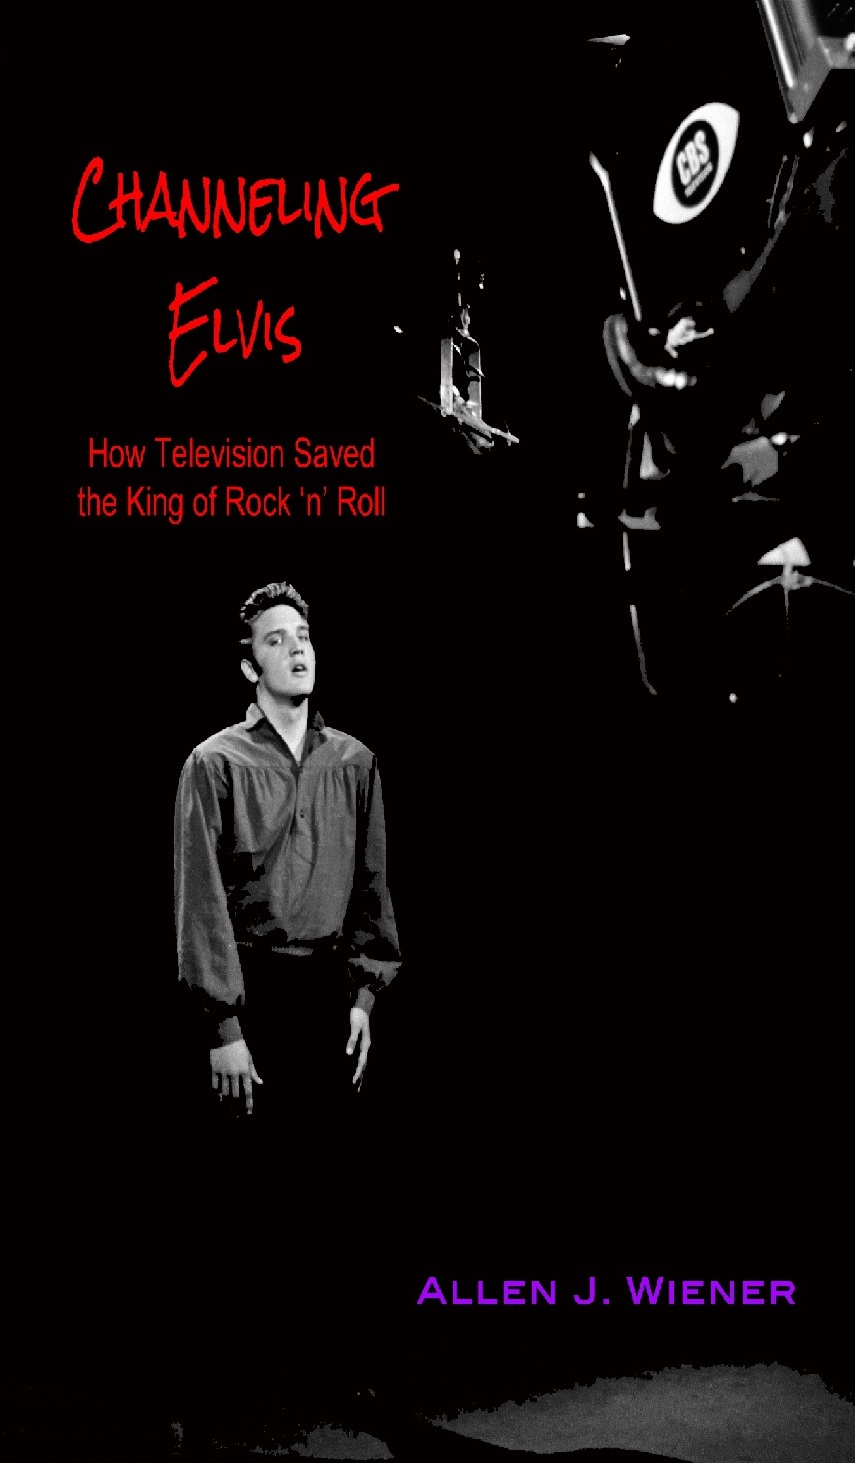 channeling-elvis-book-cover